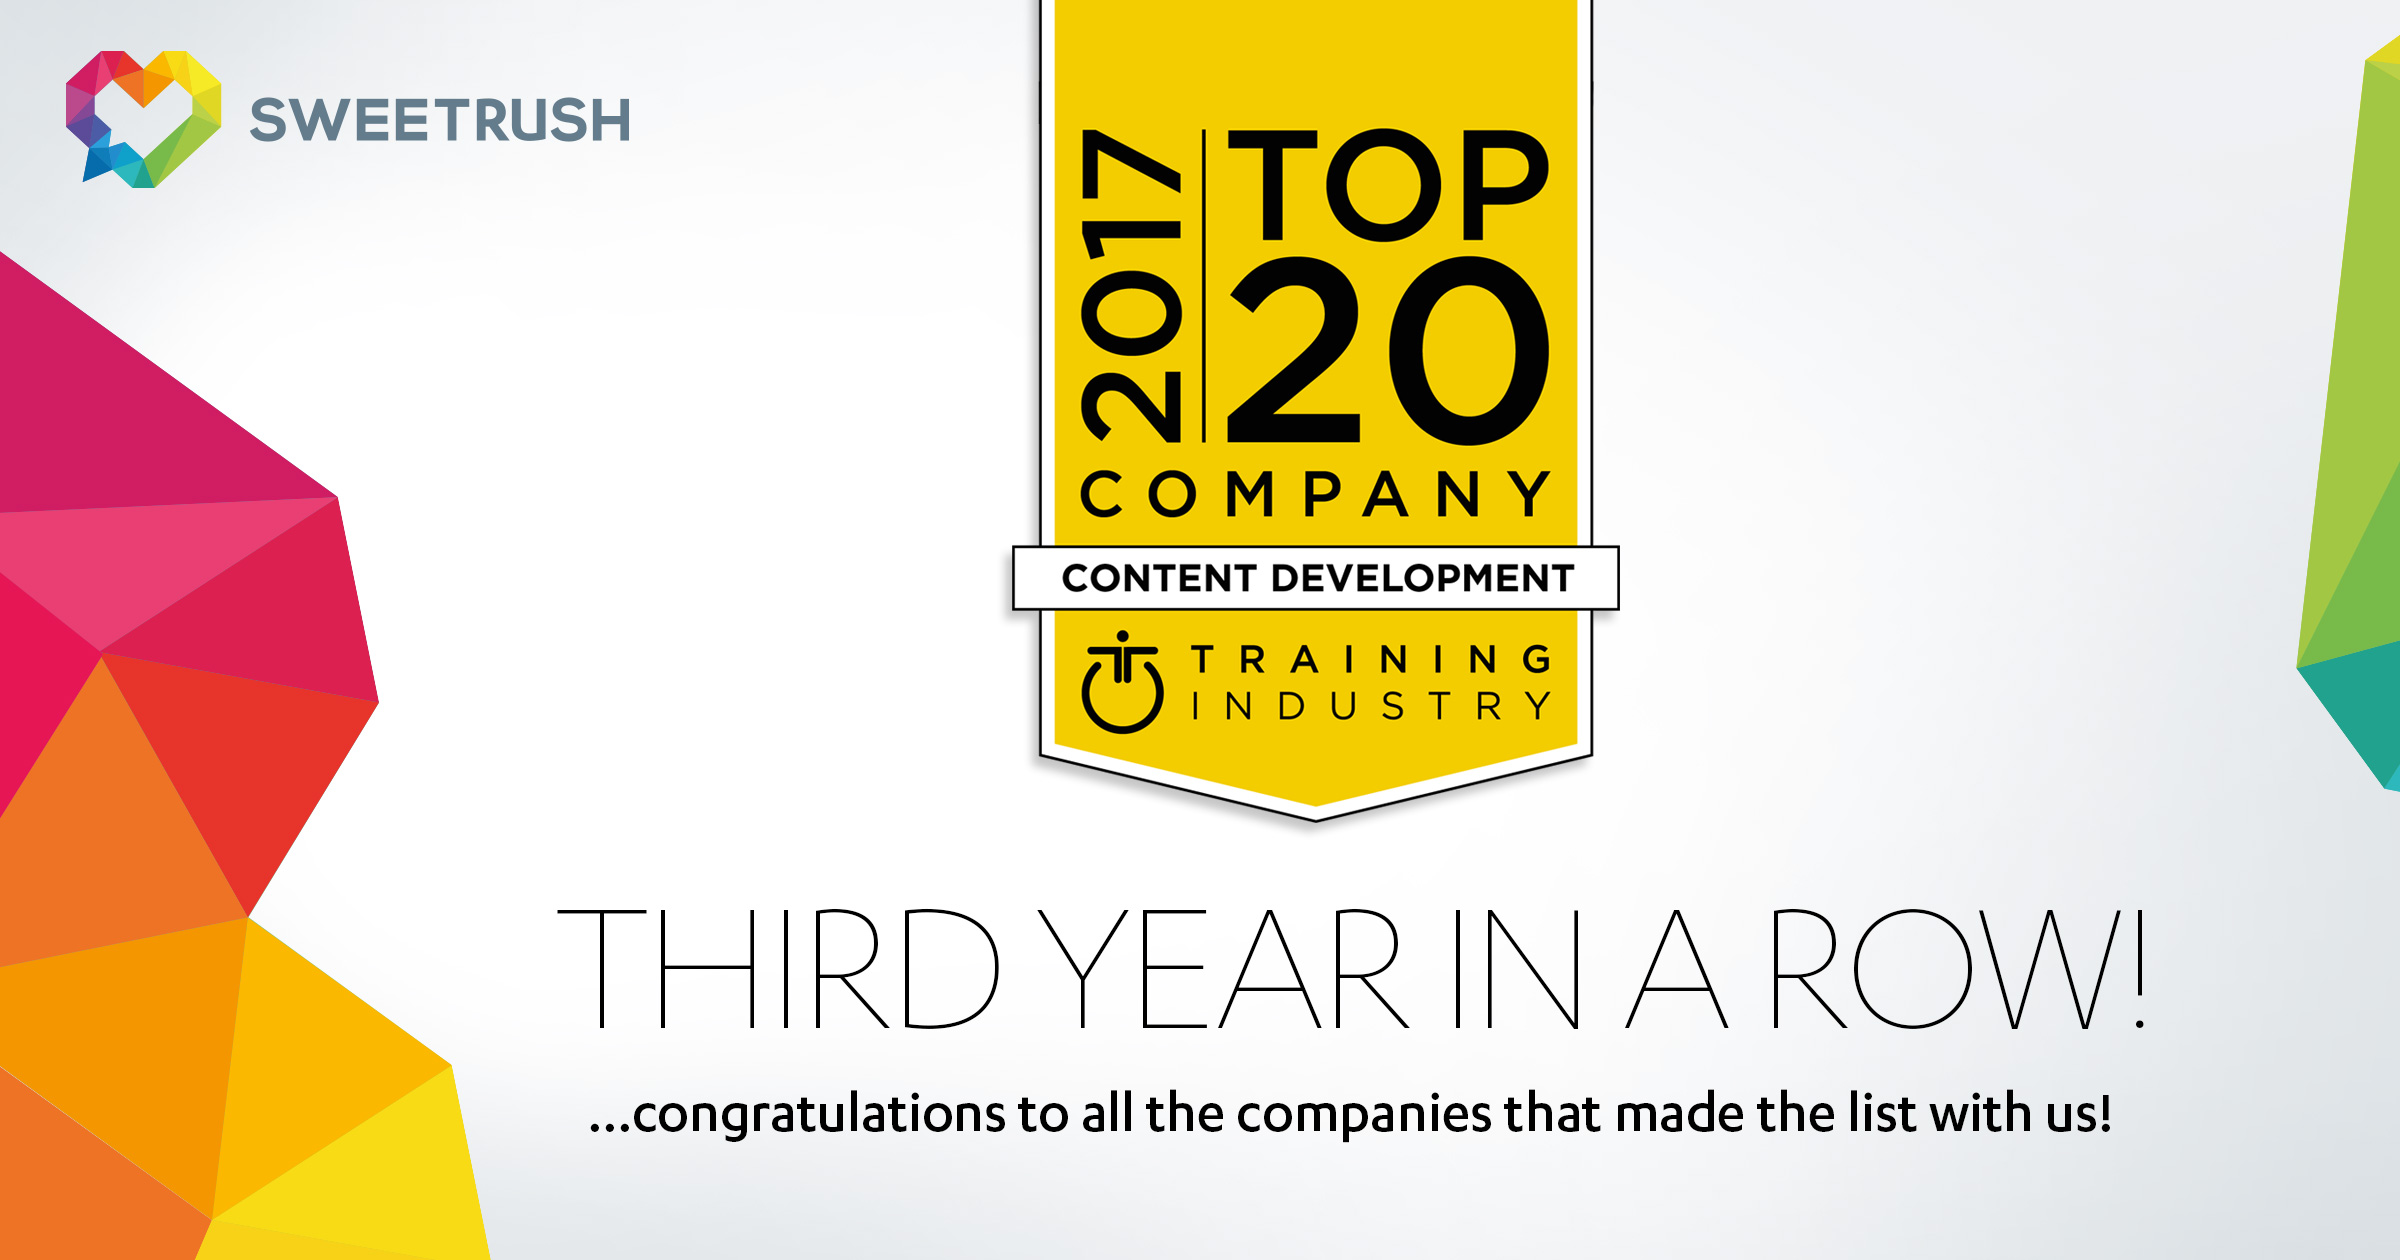 top 20 content and development company_sweetrush_training_industry